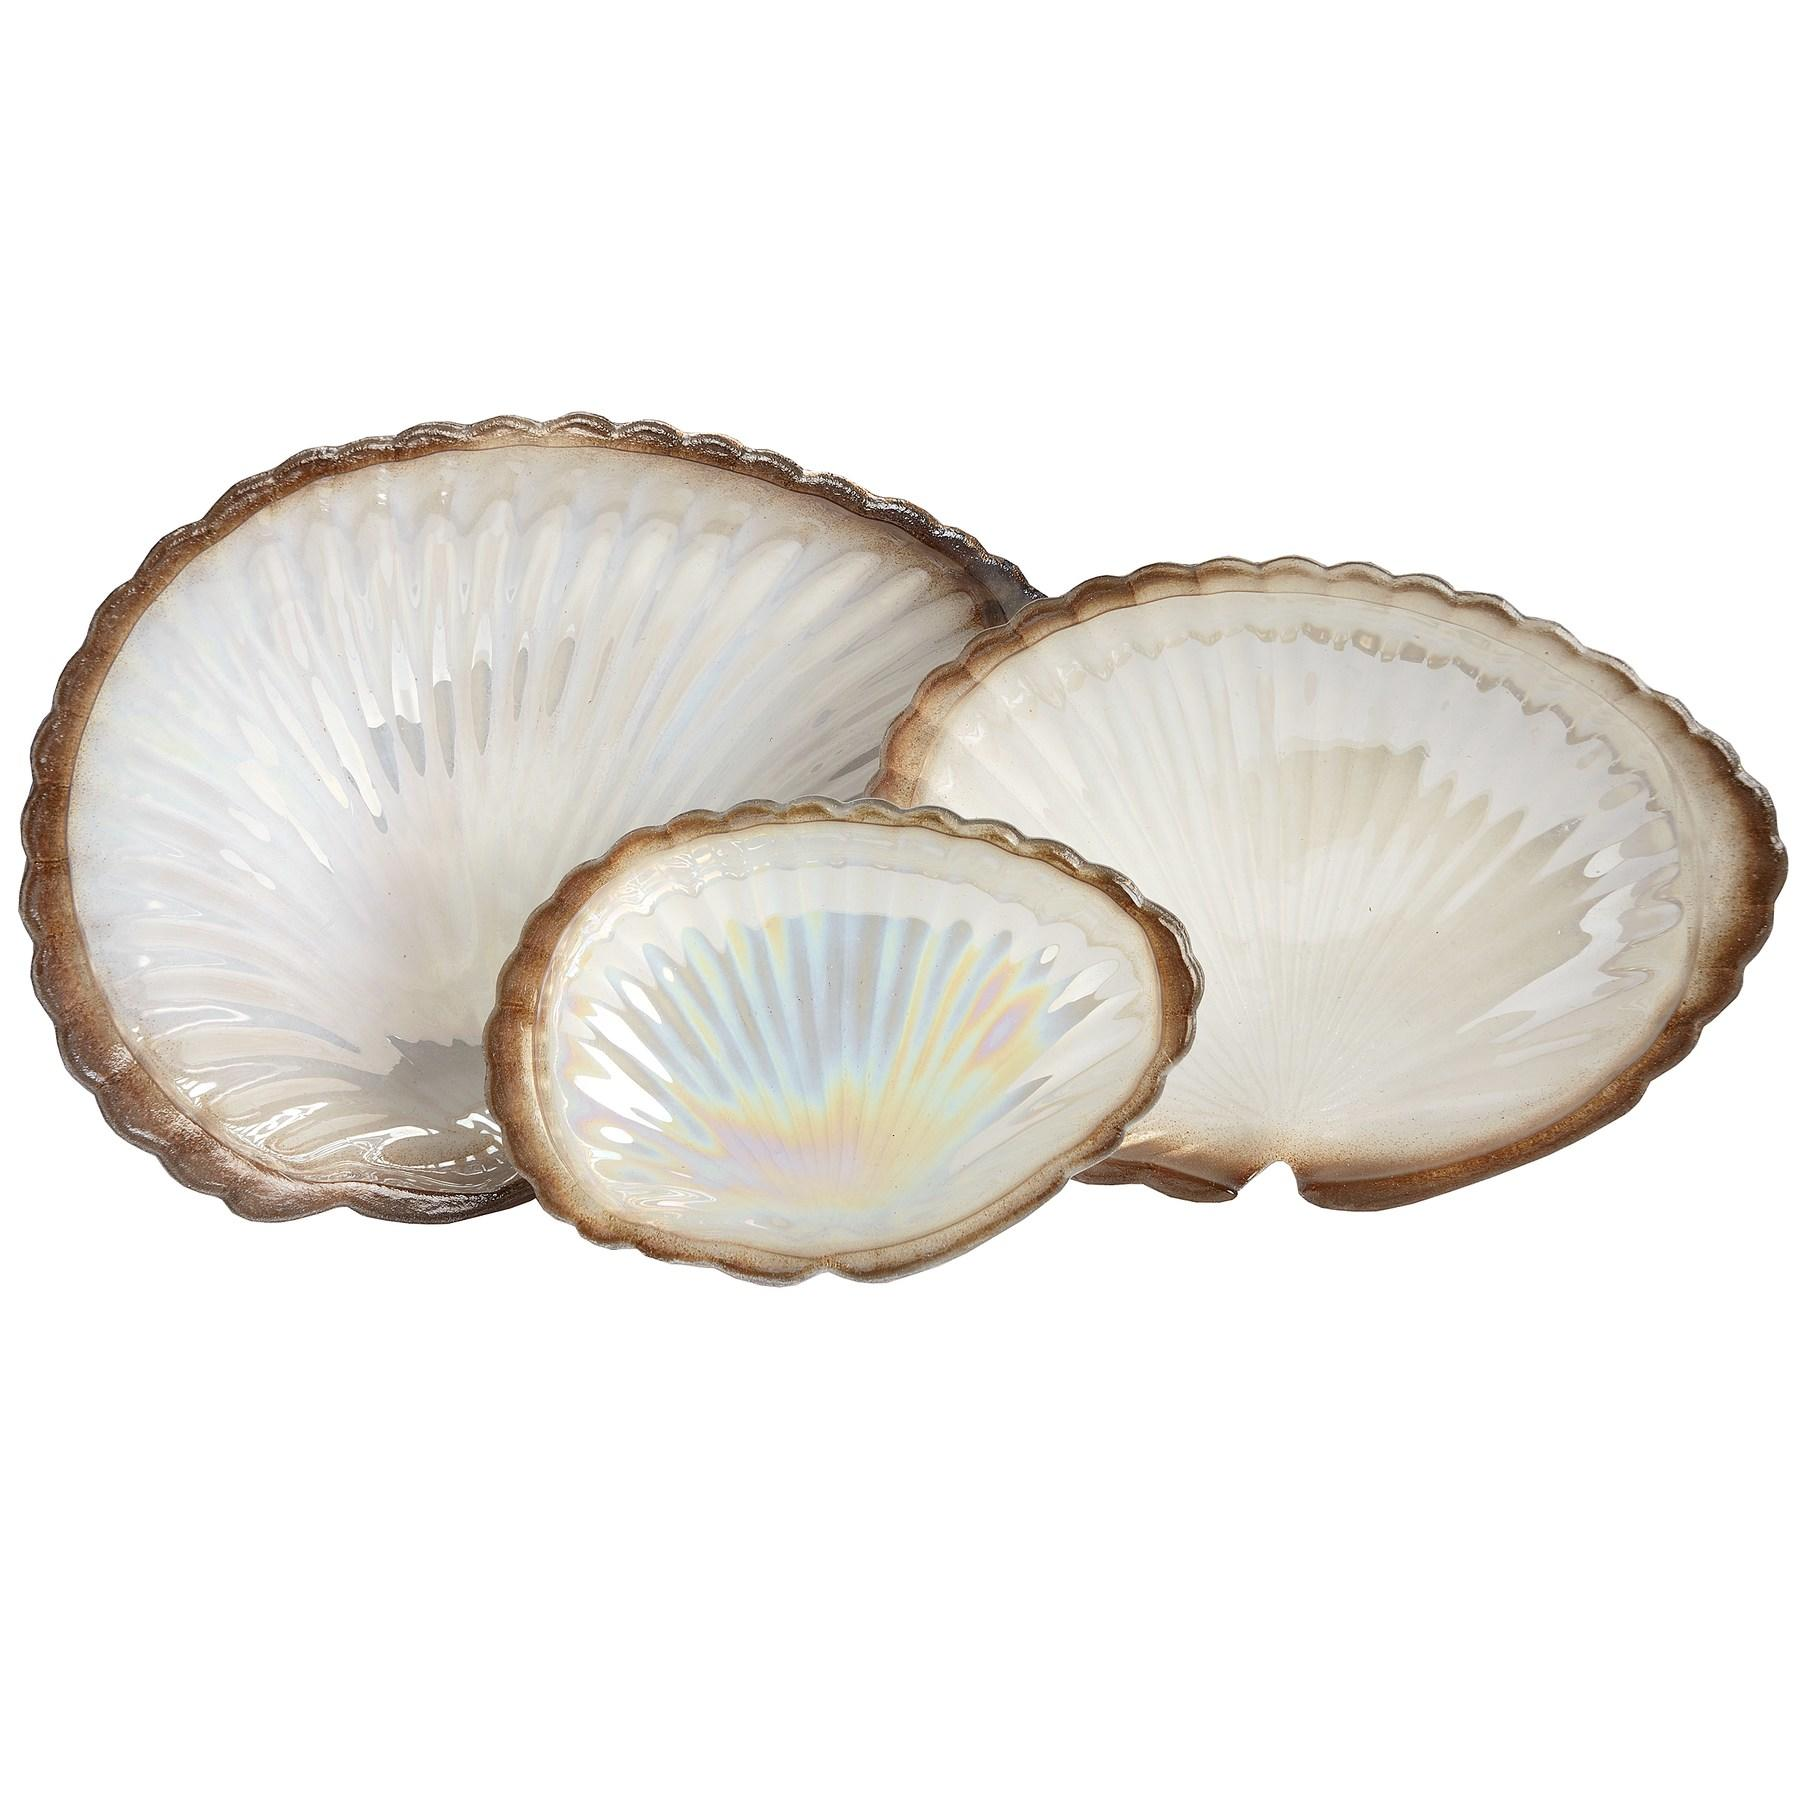 Set of 3 gold and cream clam shell display dishes